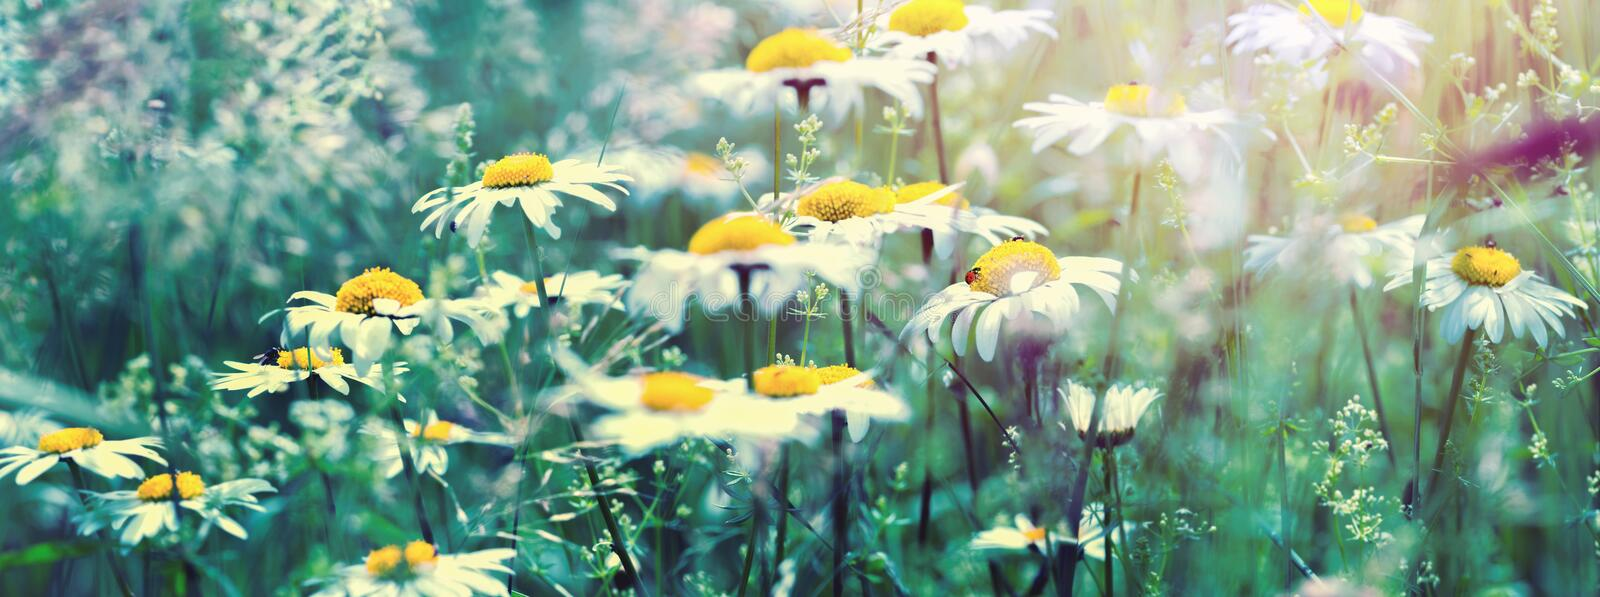 Beautiful dreamy daisy flowers, grass, ladybug close-up on wild field in sunset light panorama. Soft focus nature background. Copy stock images